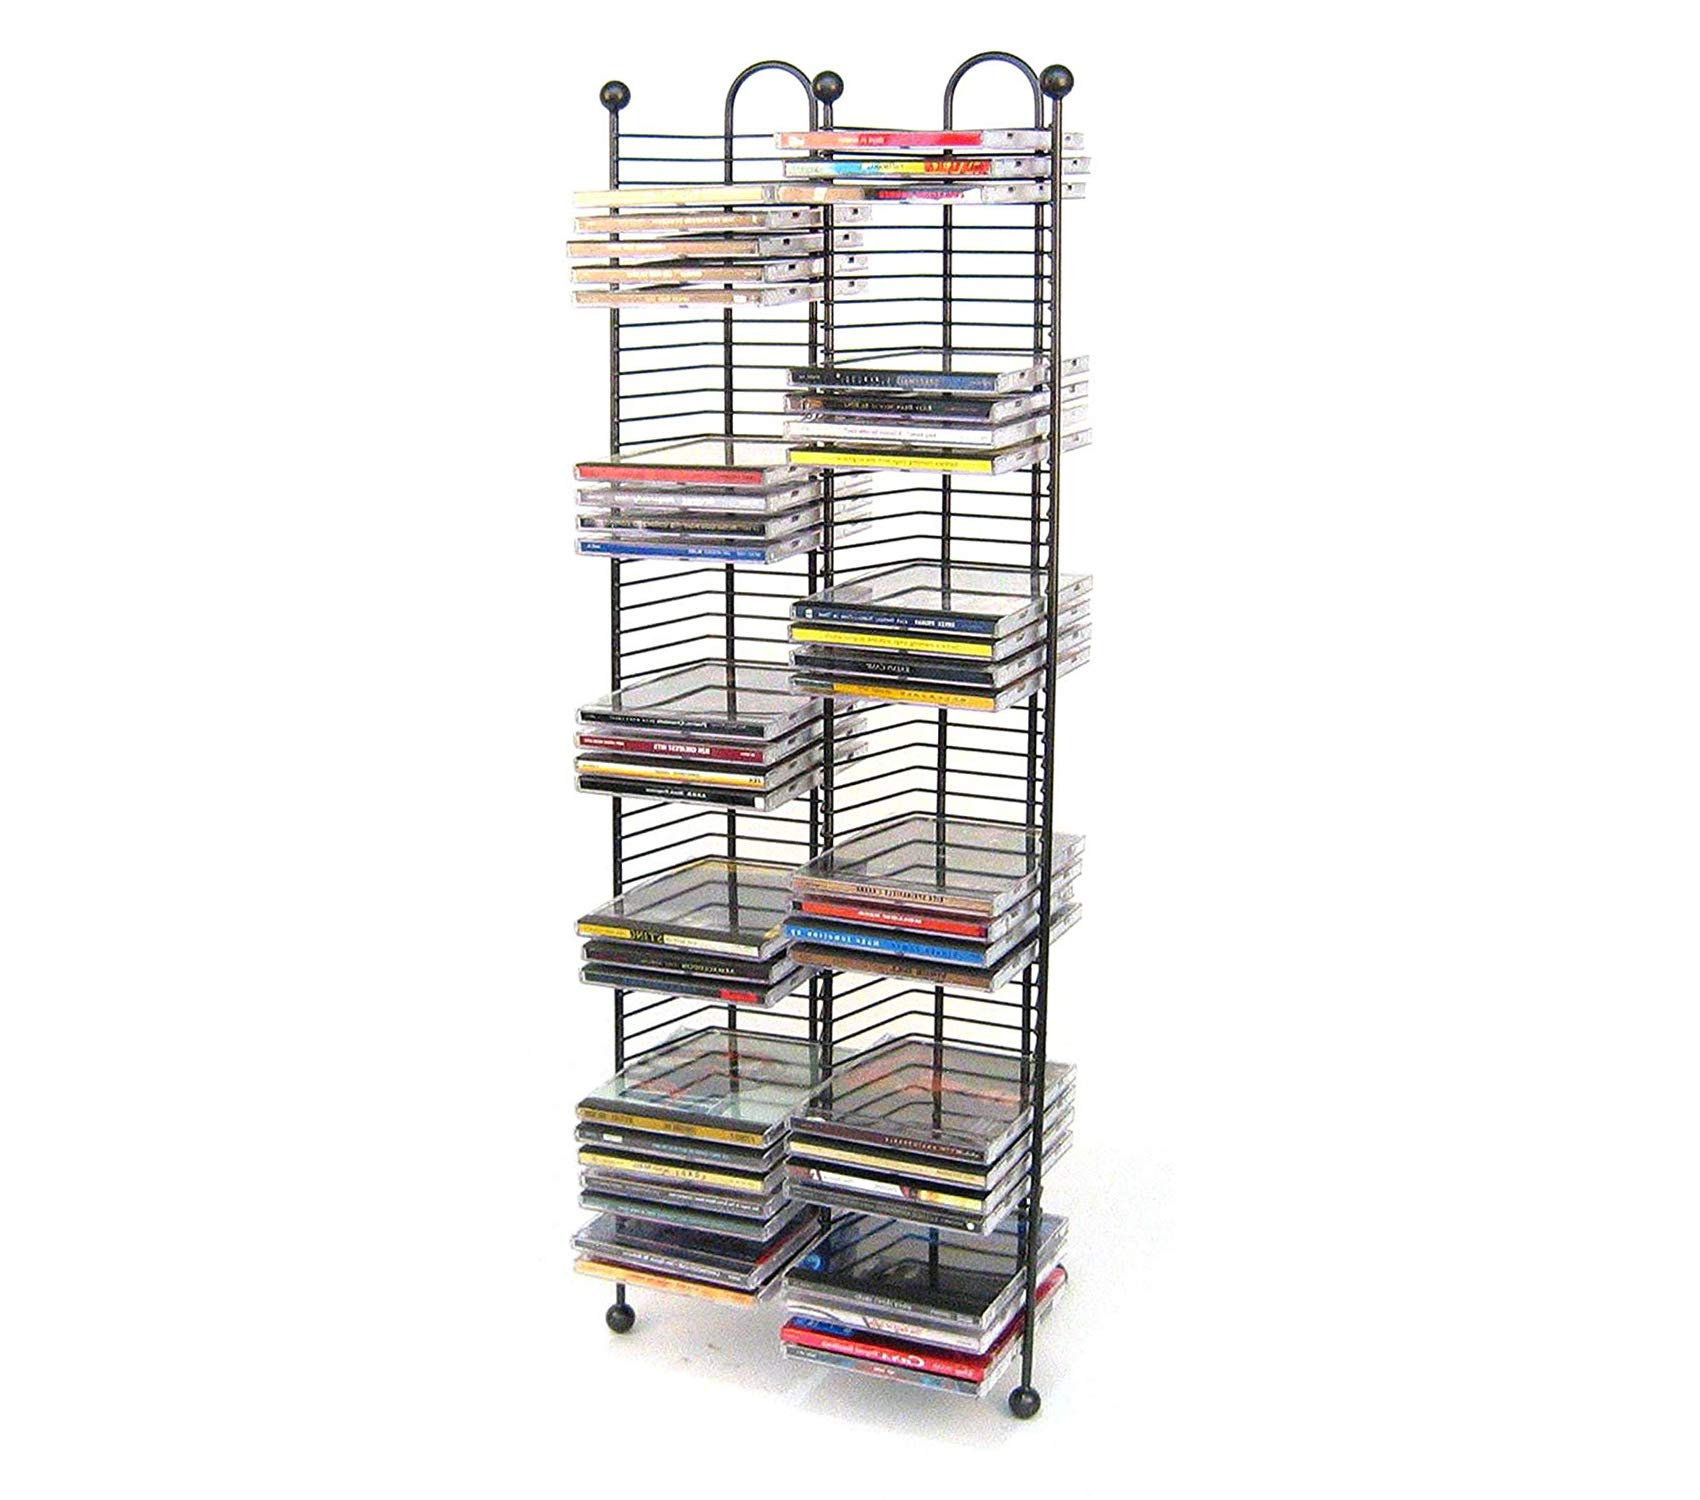 Office Home Furniture Premium 100 CD Tower - Holds 100 CDs, Efficient Space-Saving Design, Heavy Gauge Steel Construction, Gunmetal Finish with Cherry Wood Accents by Wood & Style